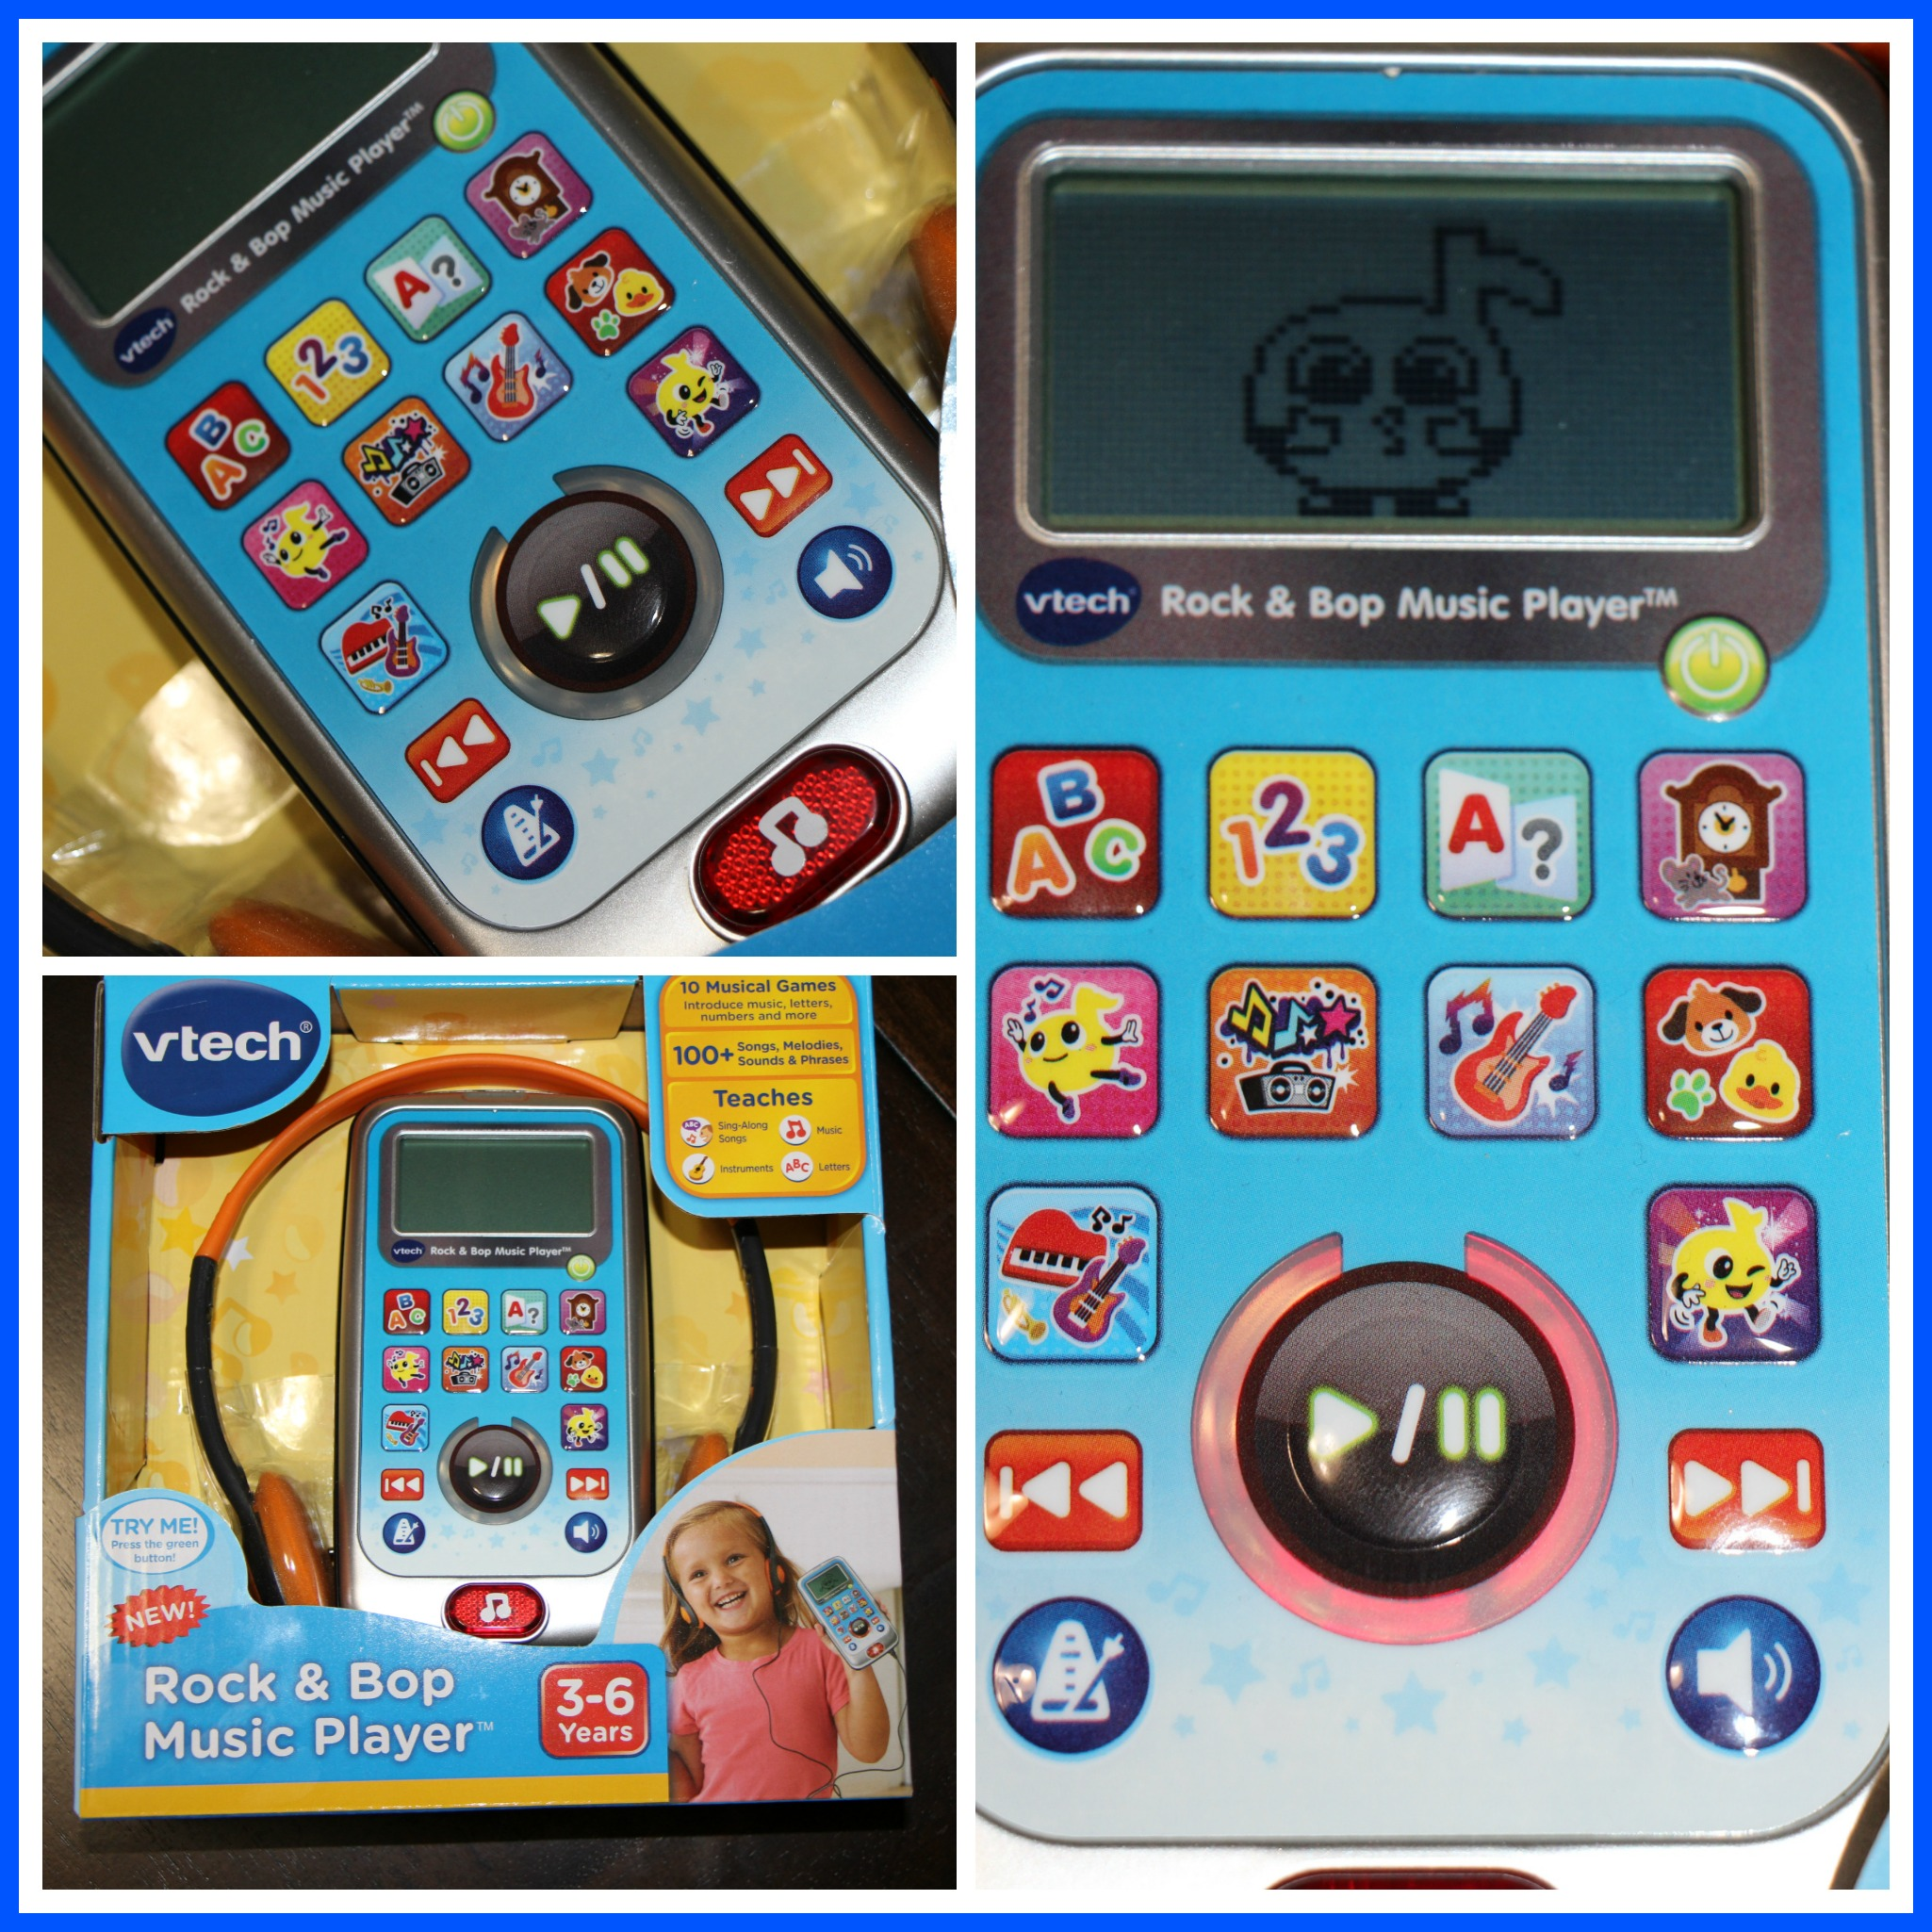 Dance to the Music with VTech Rock and Bop Music Player